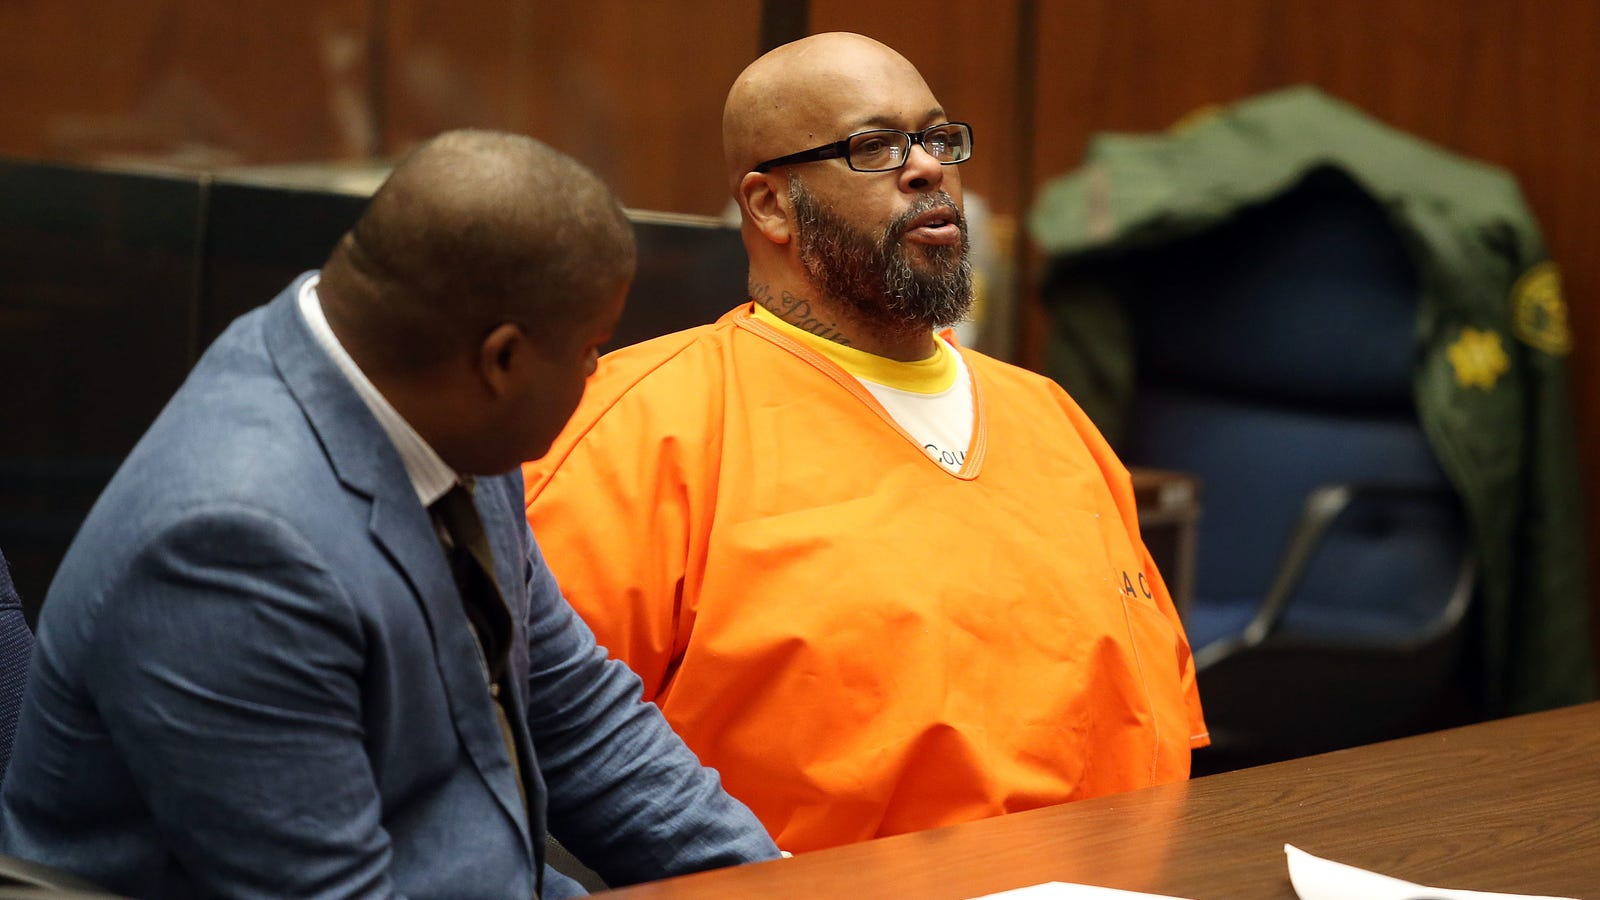 Suge Knight gets 28 years in prison after fatal hit-and-run